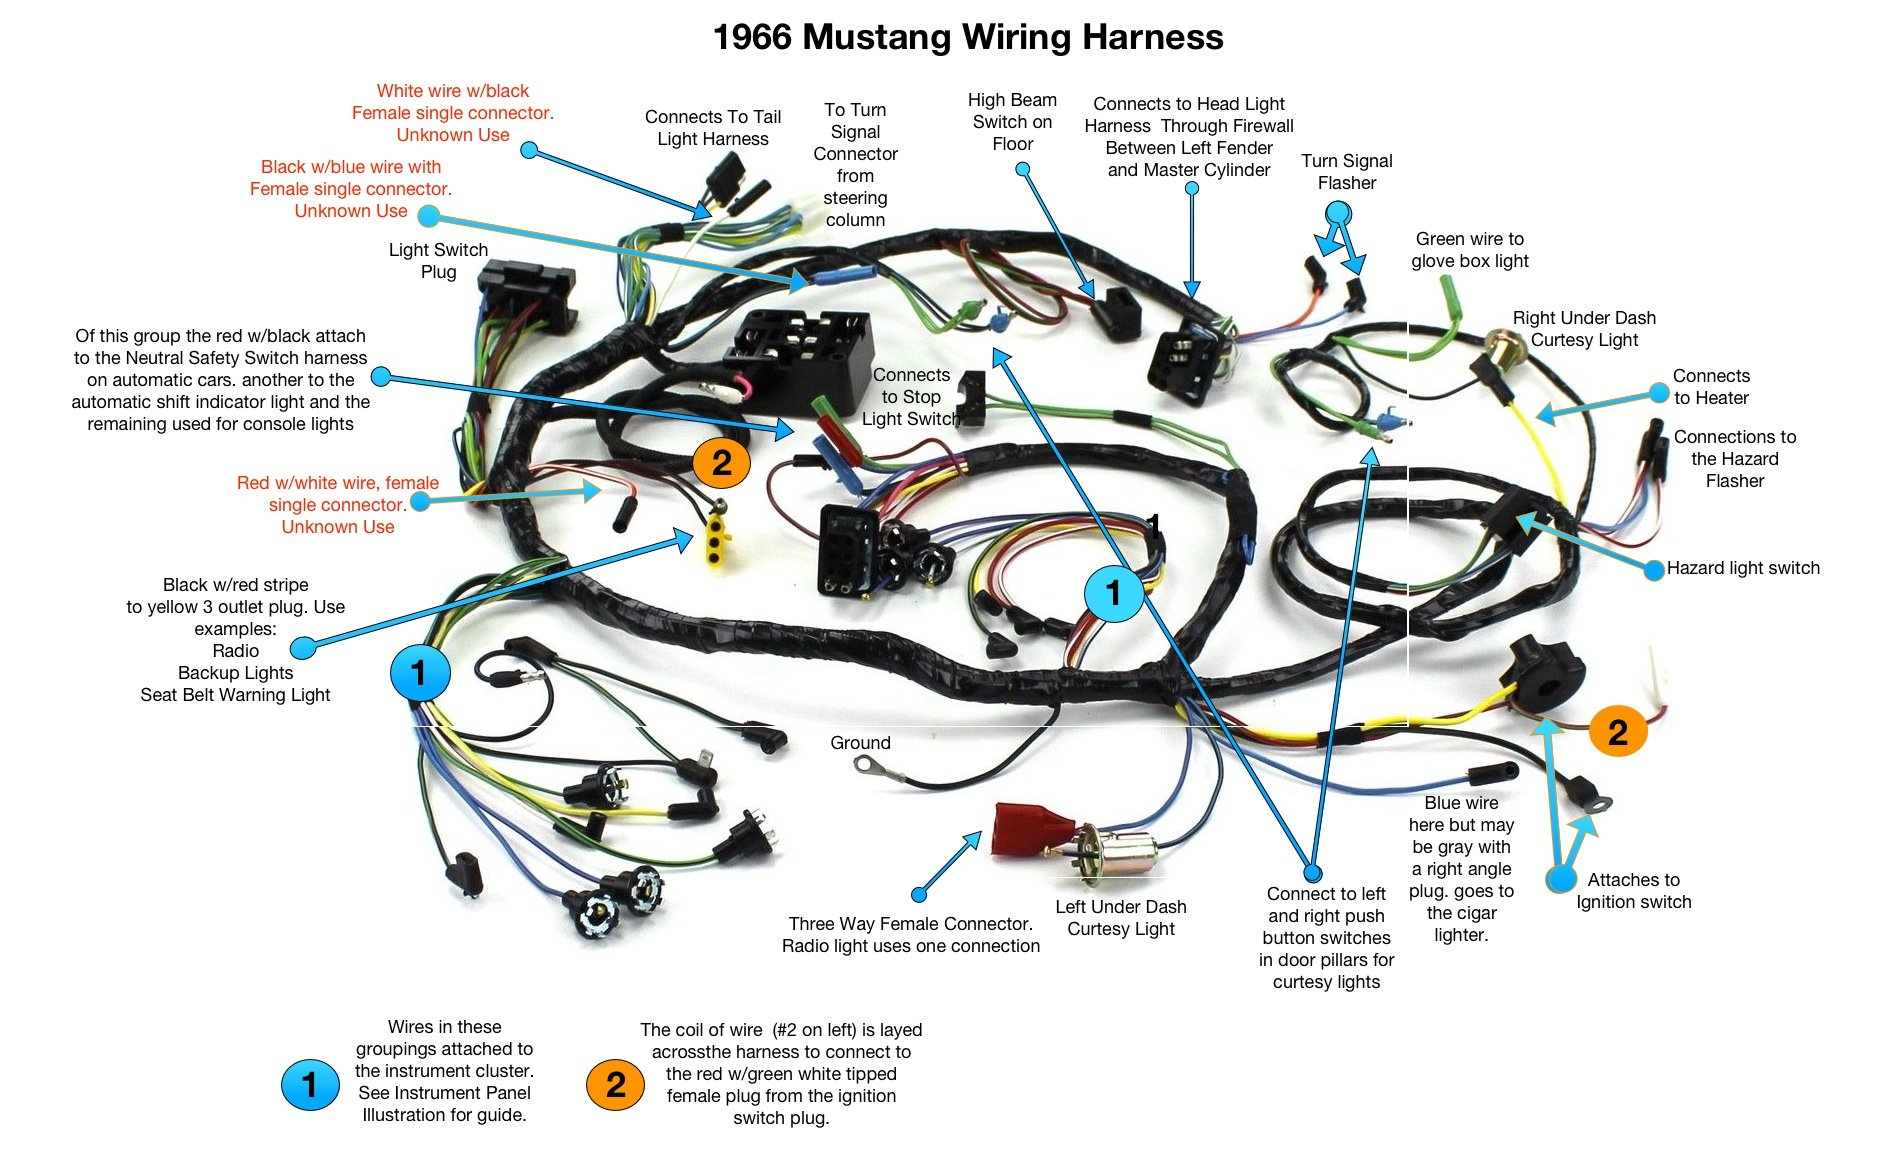 66 wiring harness diagram ford mustang forum click image for larger version 66 mustang wiring harness jpg views 3317